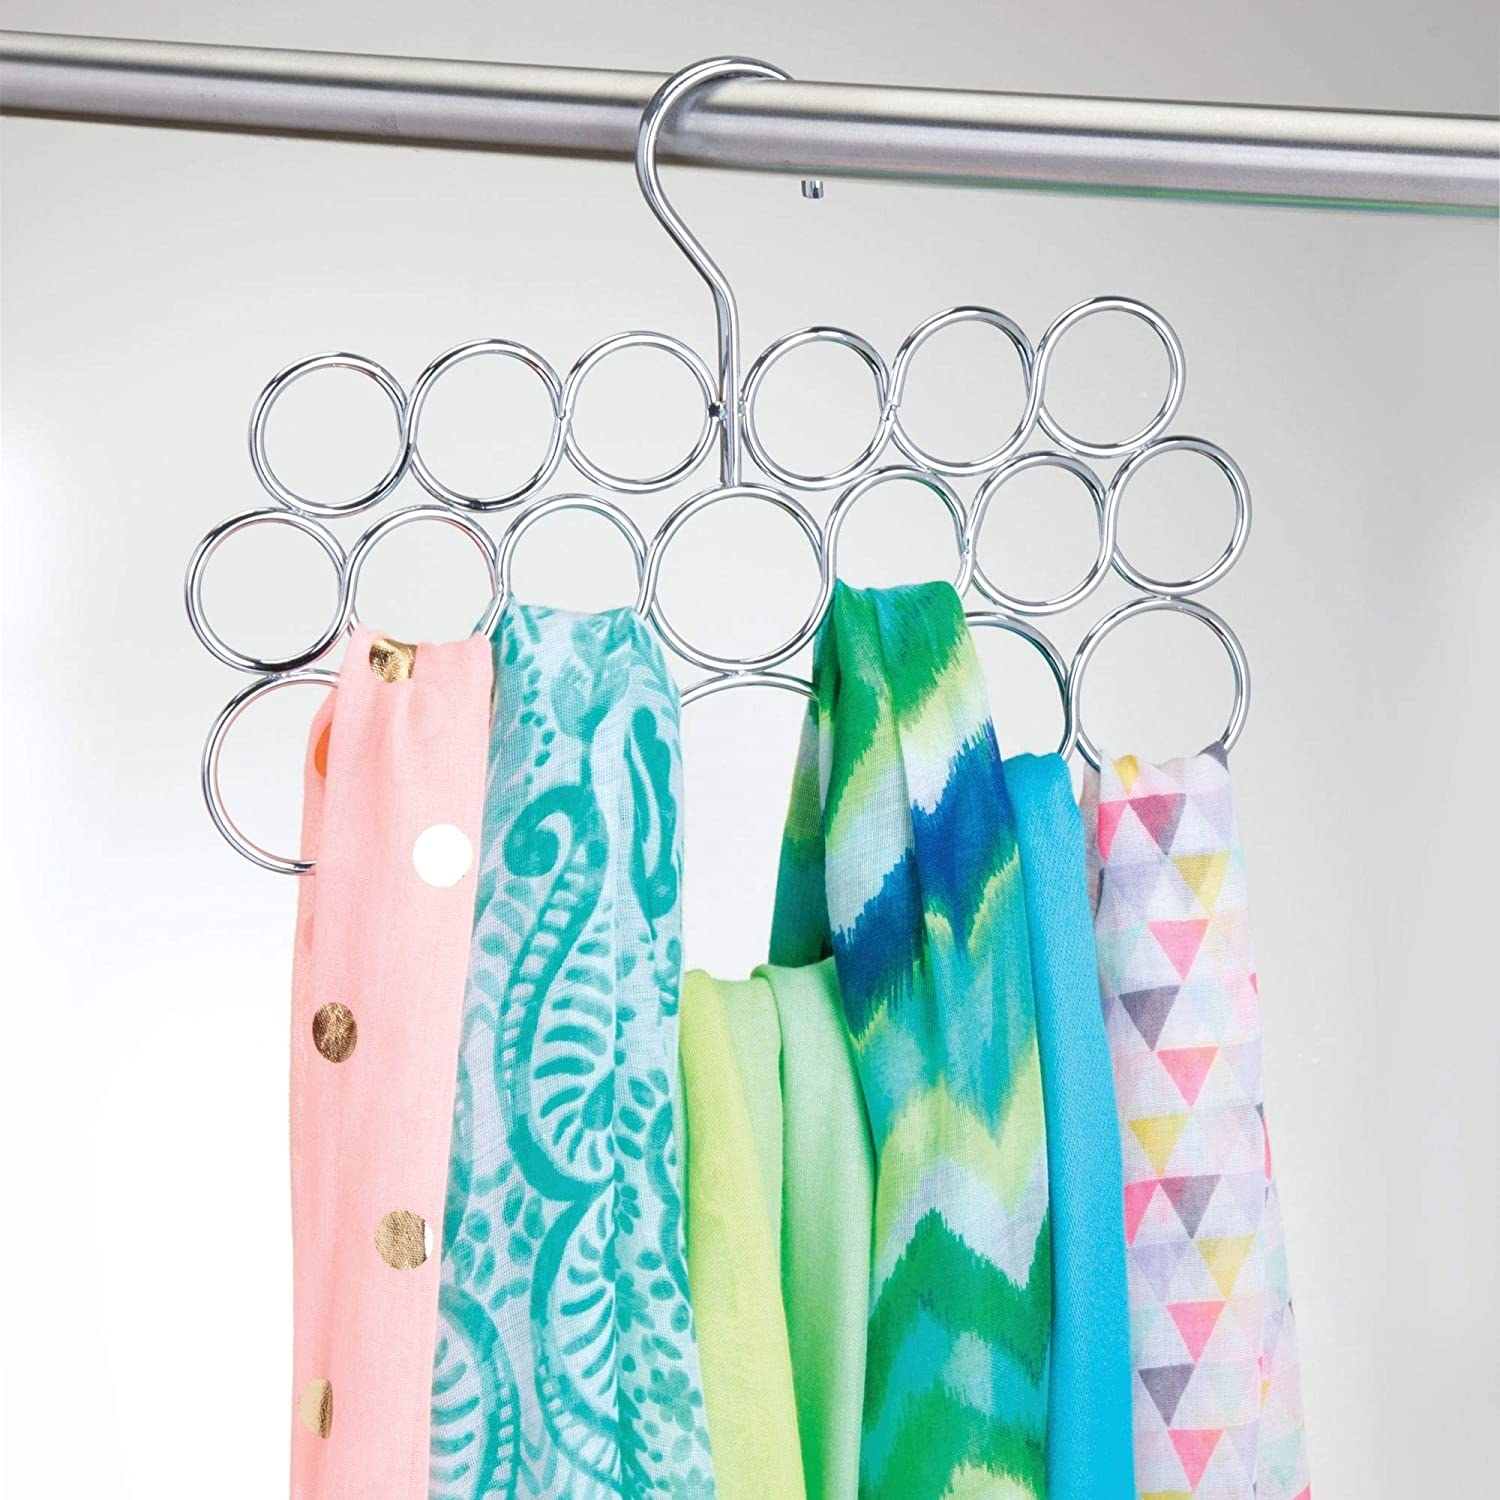 A metal hanger with a dozen small circles Colourful scarves are hanging from the loops